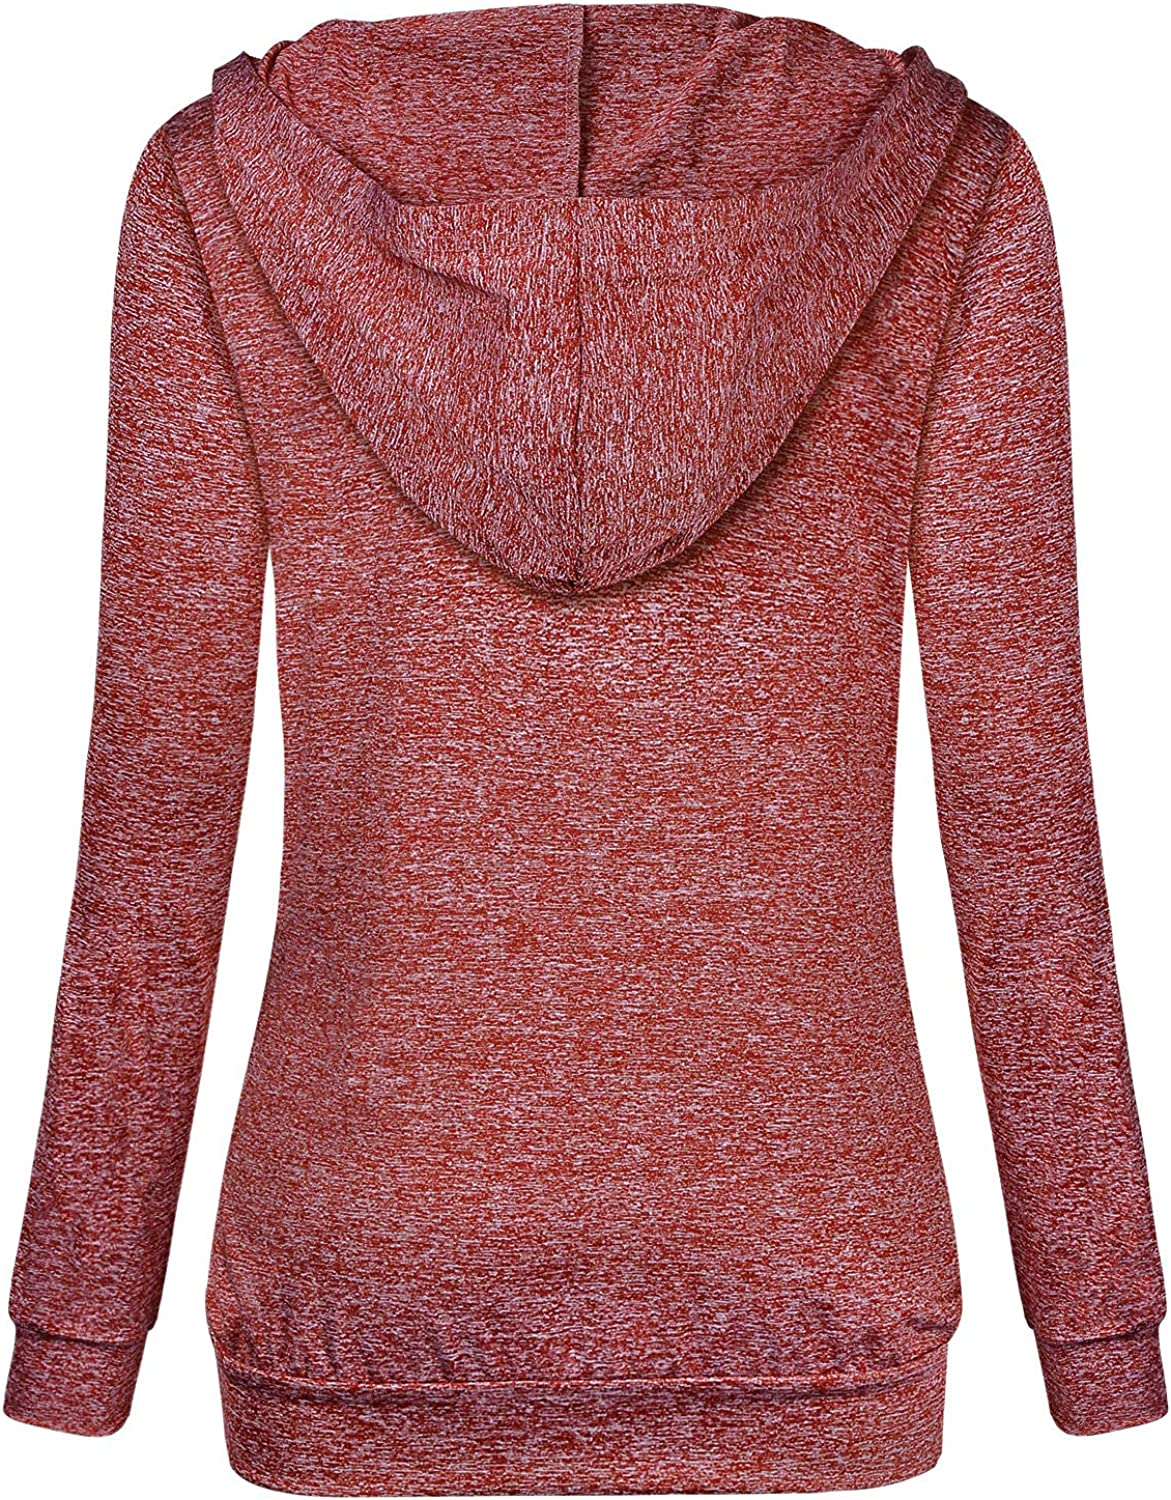 Womens Long Sleeve Hoodie Pullover Casual Lightweight Sweatshirts Activewear Hooded Shirt Top Yoga Workout